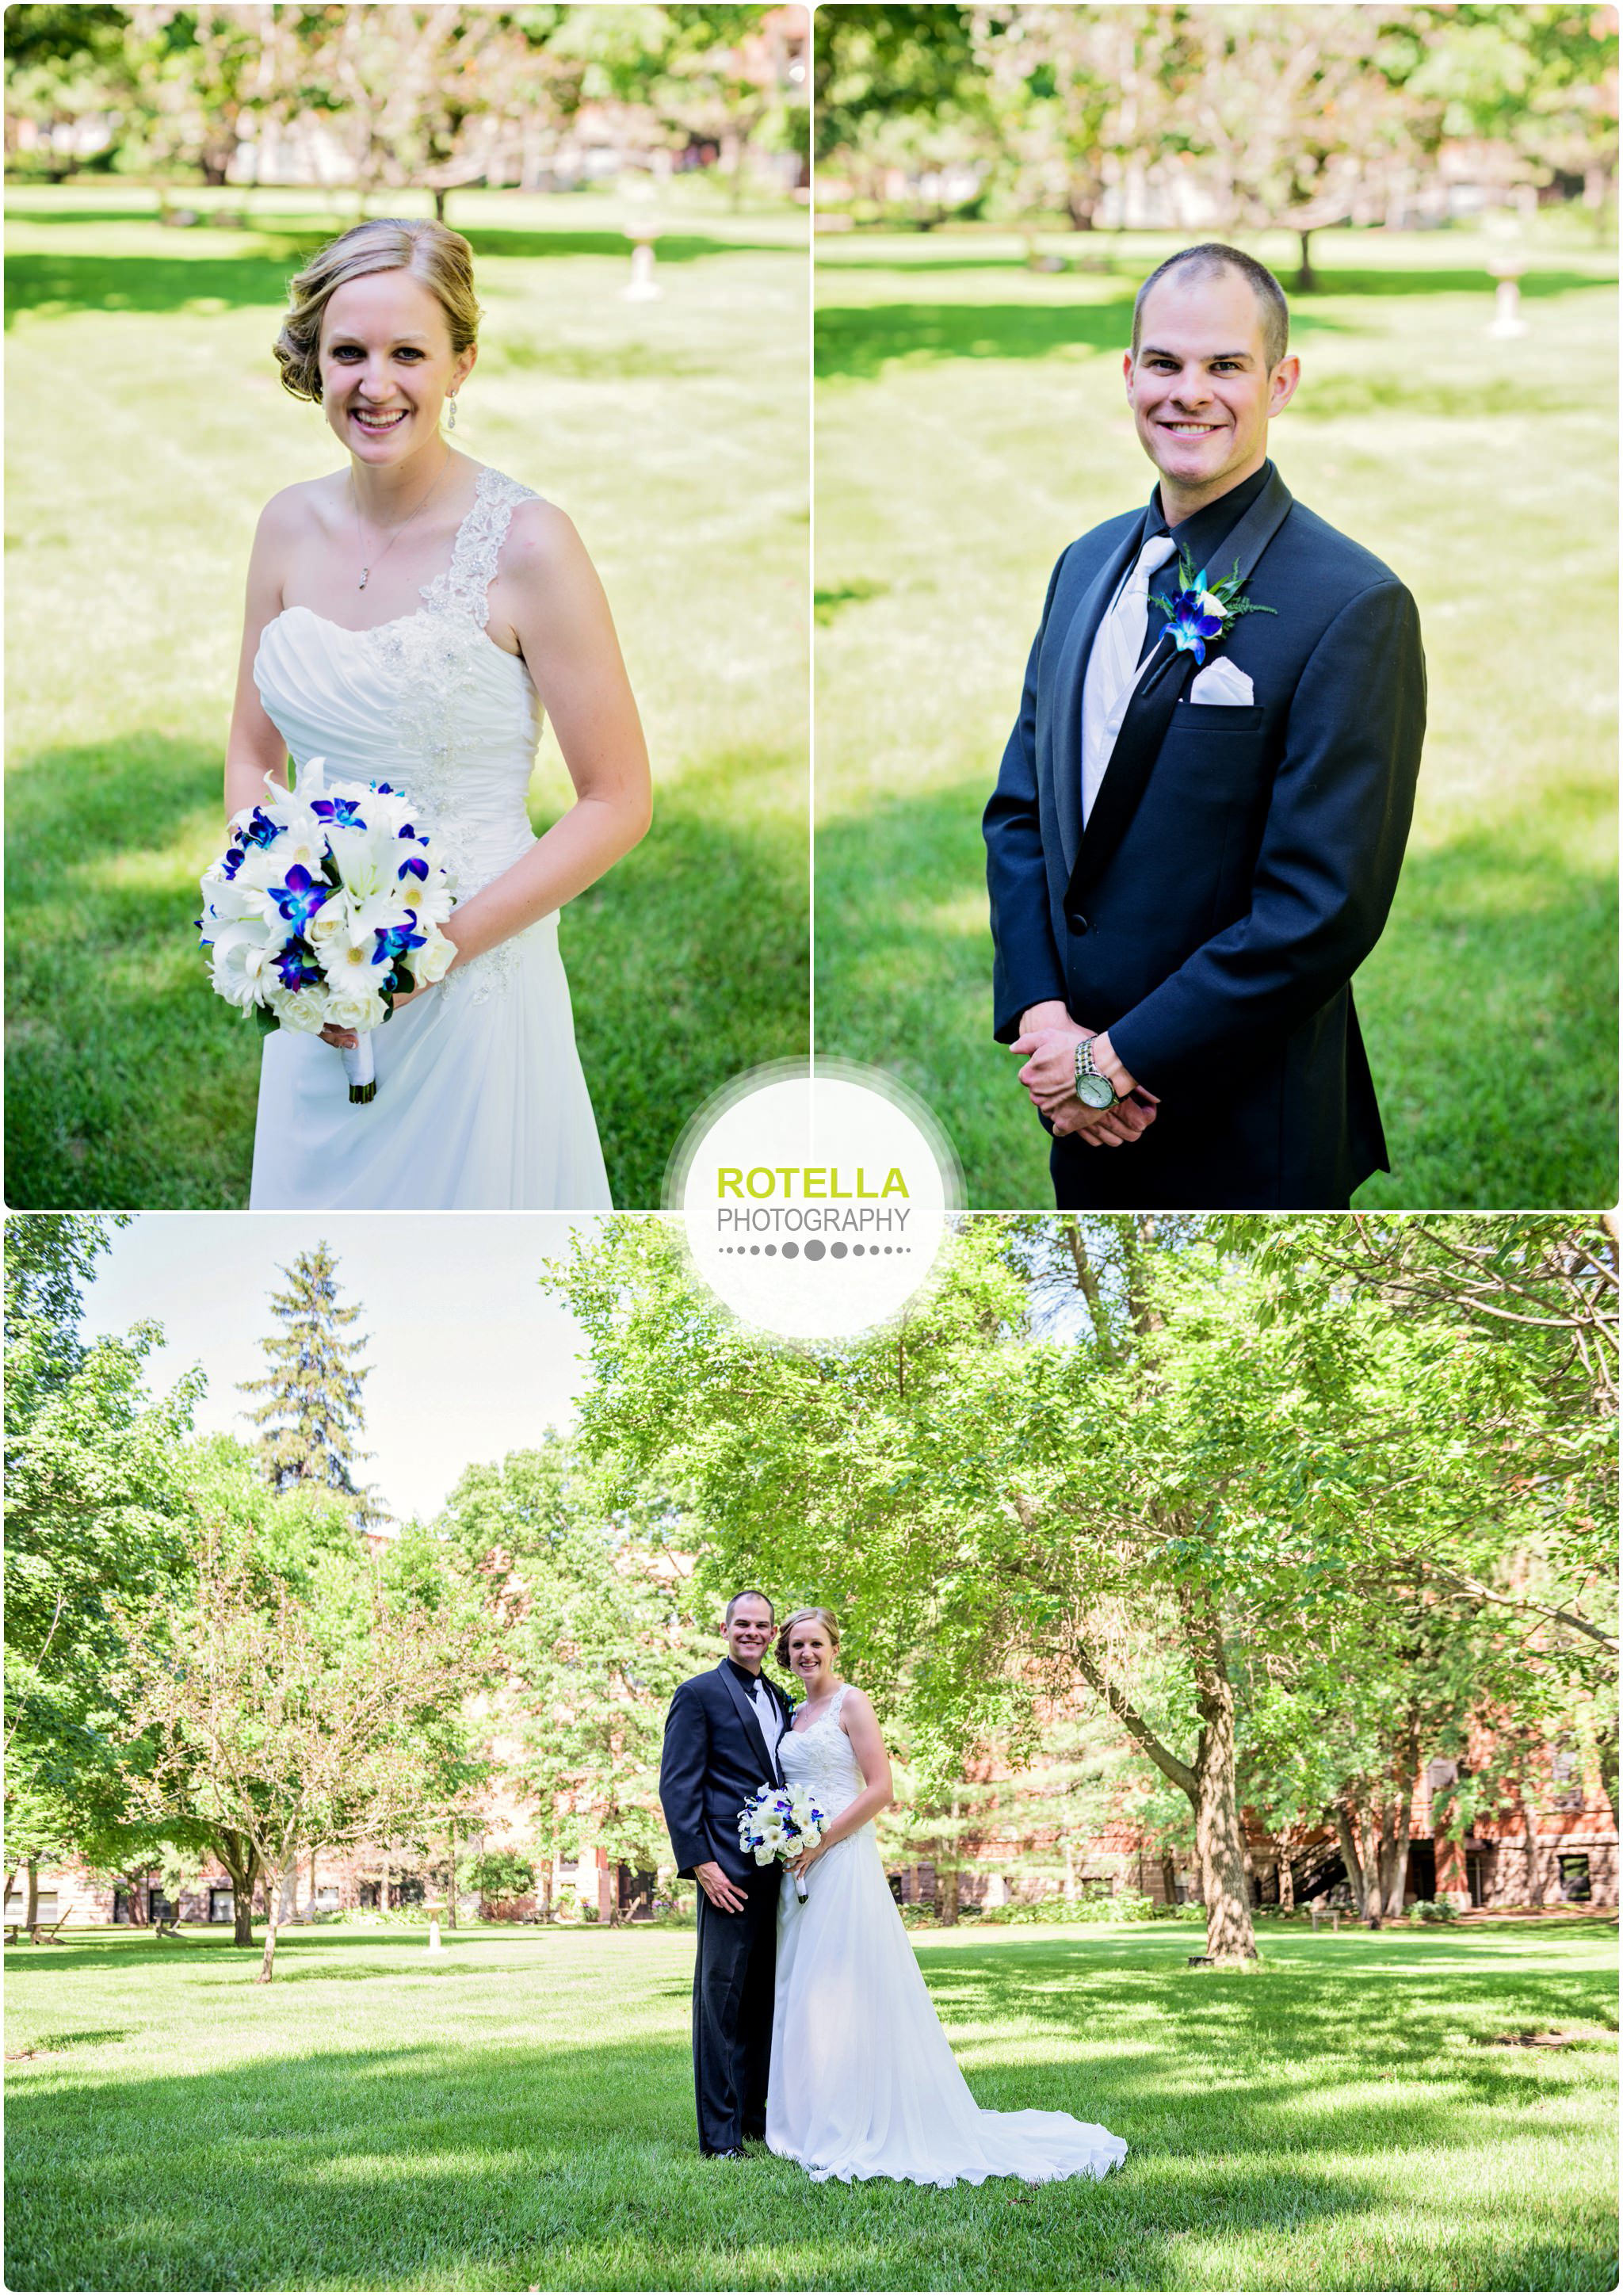 A College of St. Benedict's Wedding outdoor portraits on the lawn